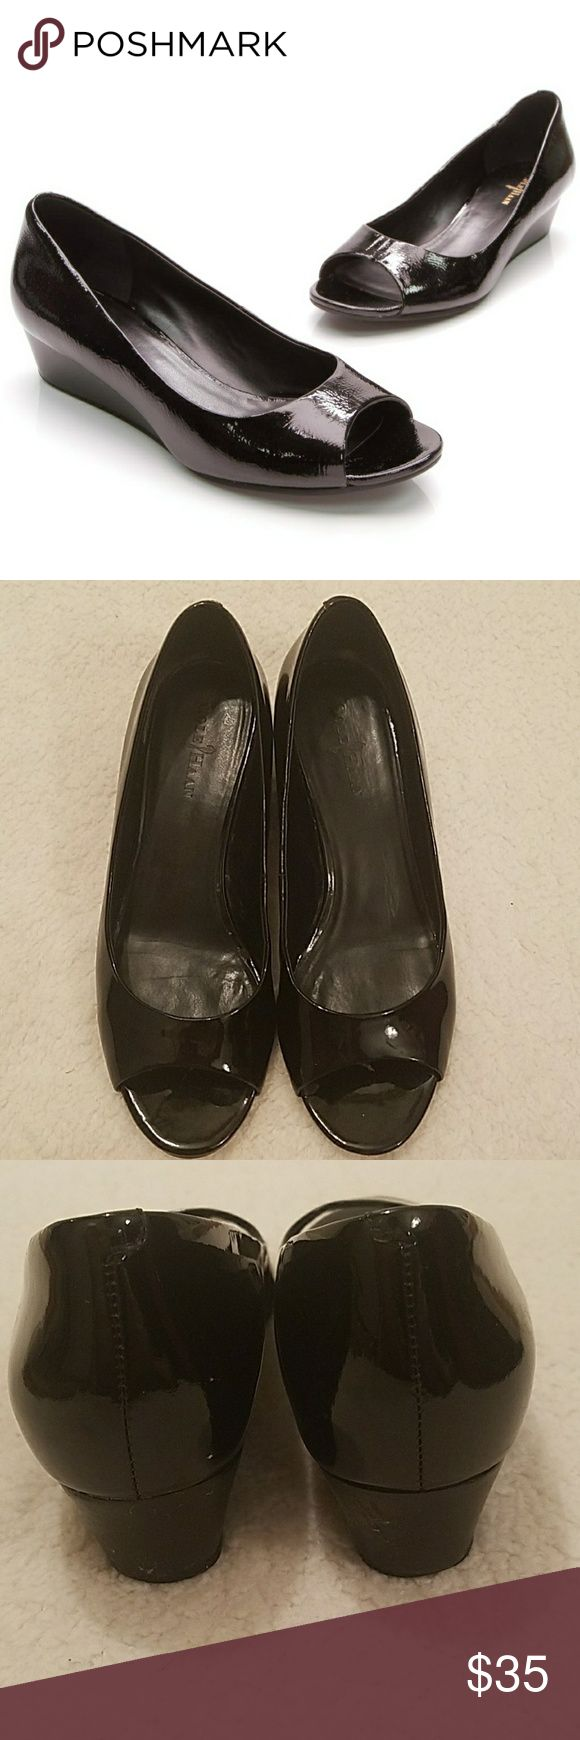 Cole Haan Elsie Black Peep Toe Wedge Heels Shoes are in excellent condition! Super comfortable and classy! Only flaw are the wedges show a little bit of wear. Cole Haan Shoes Wedges